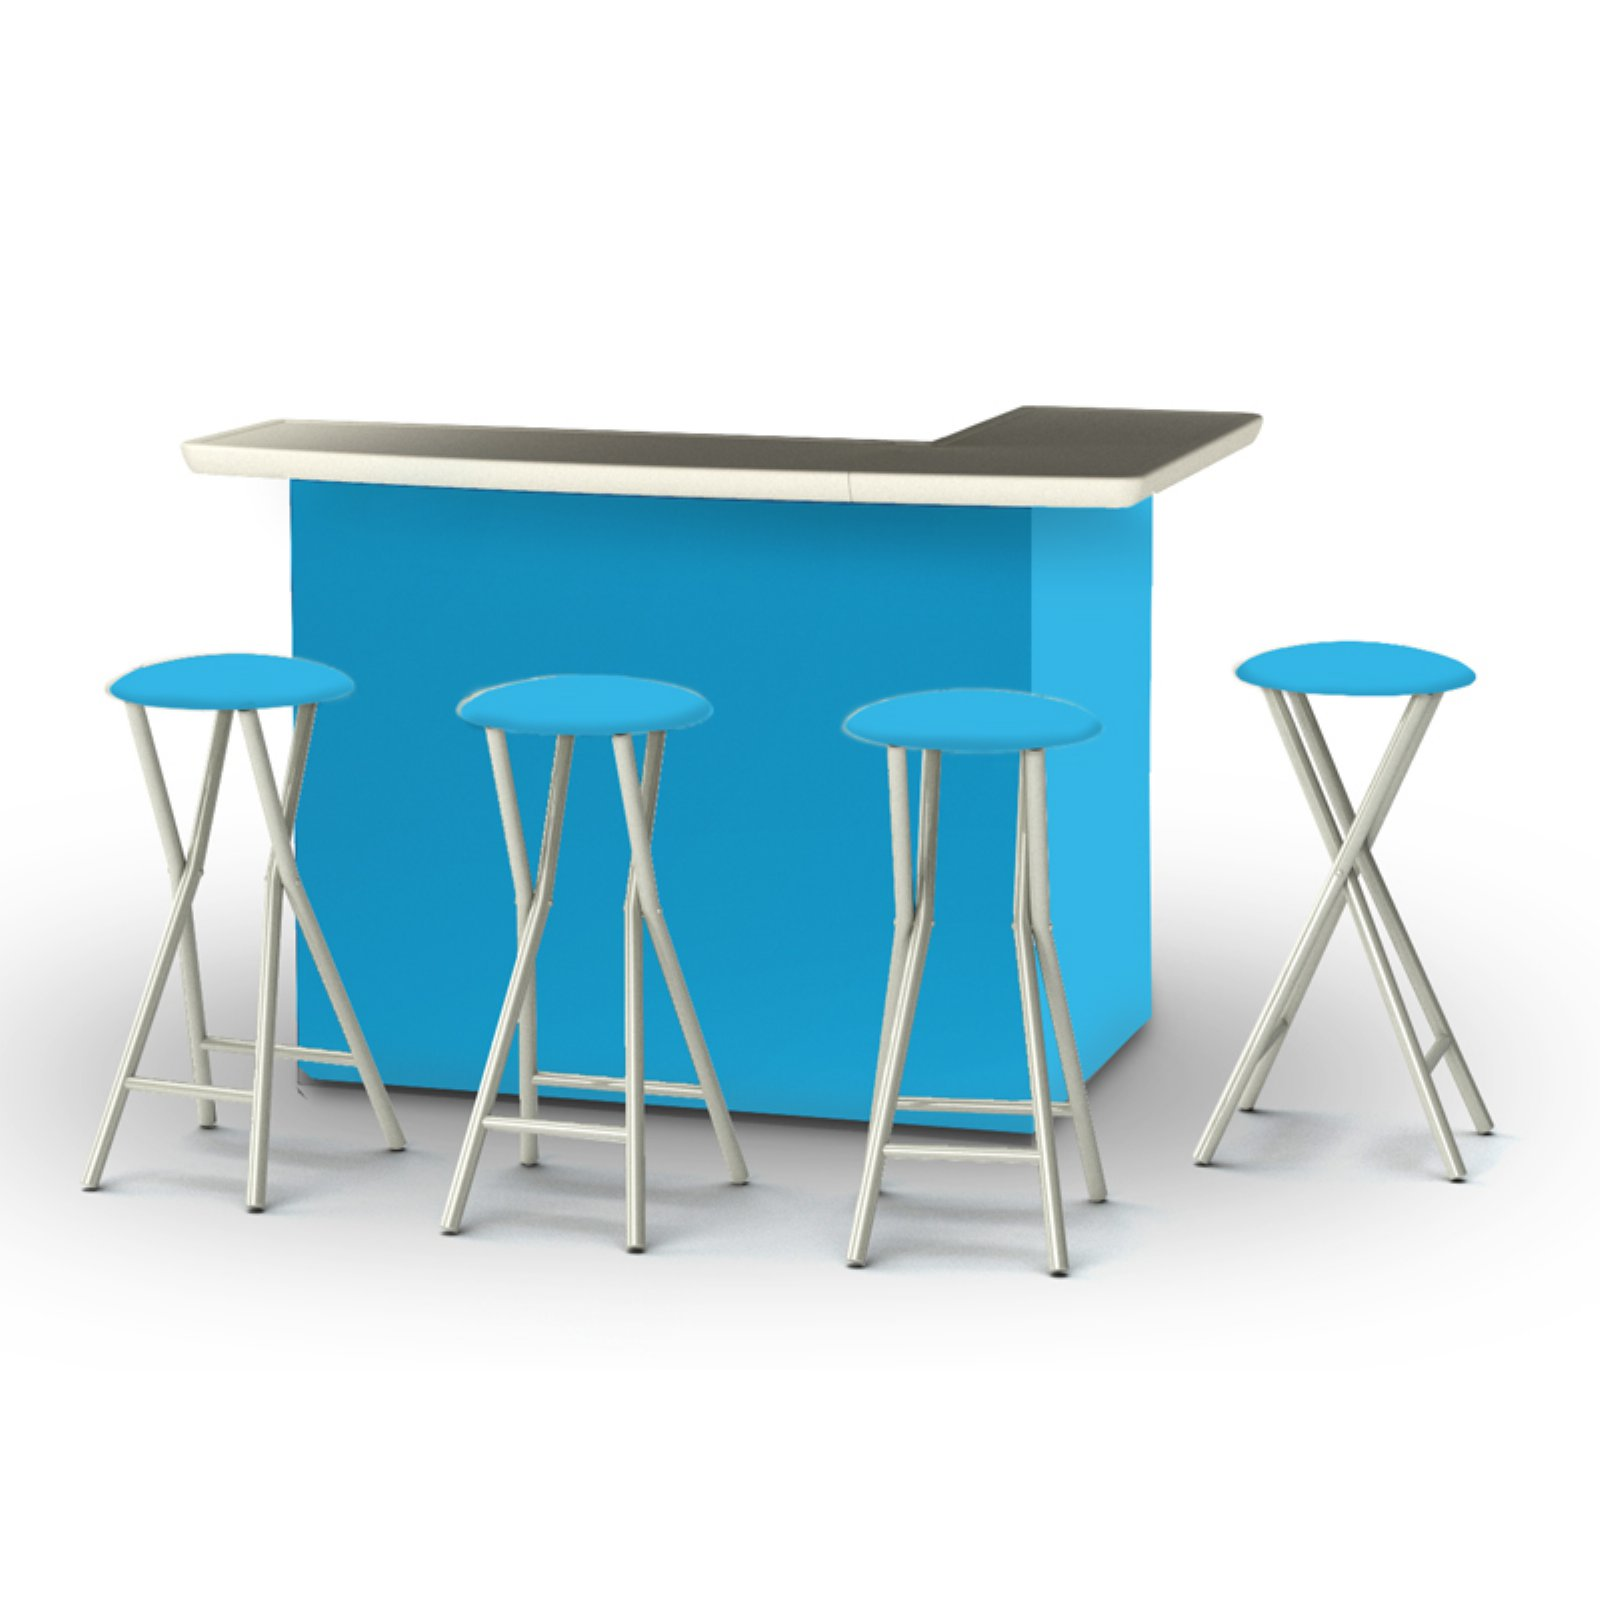 Best of Times Solid Patio Bar and Tailgating Center with 4 Bar Stools by Best of Times LLC